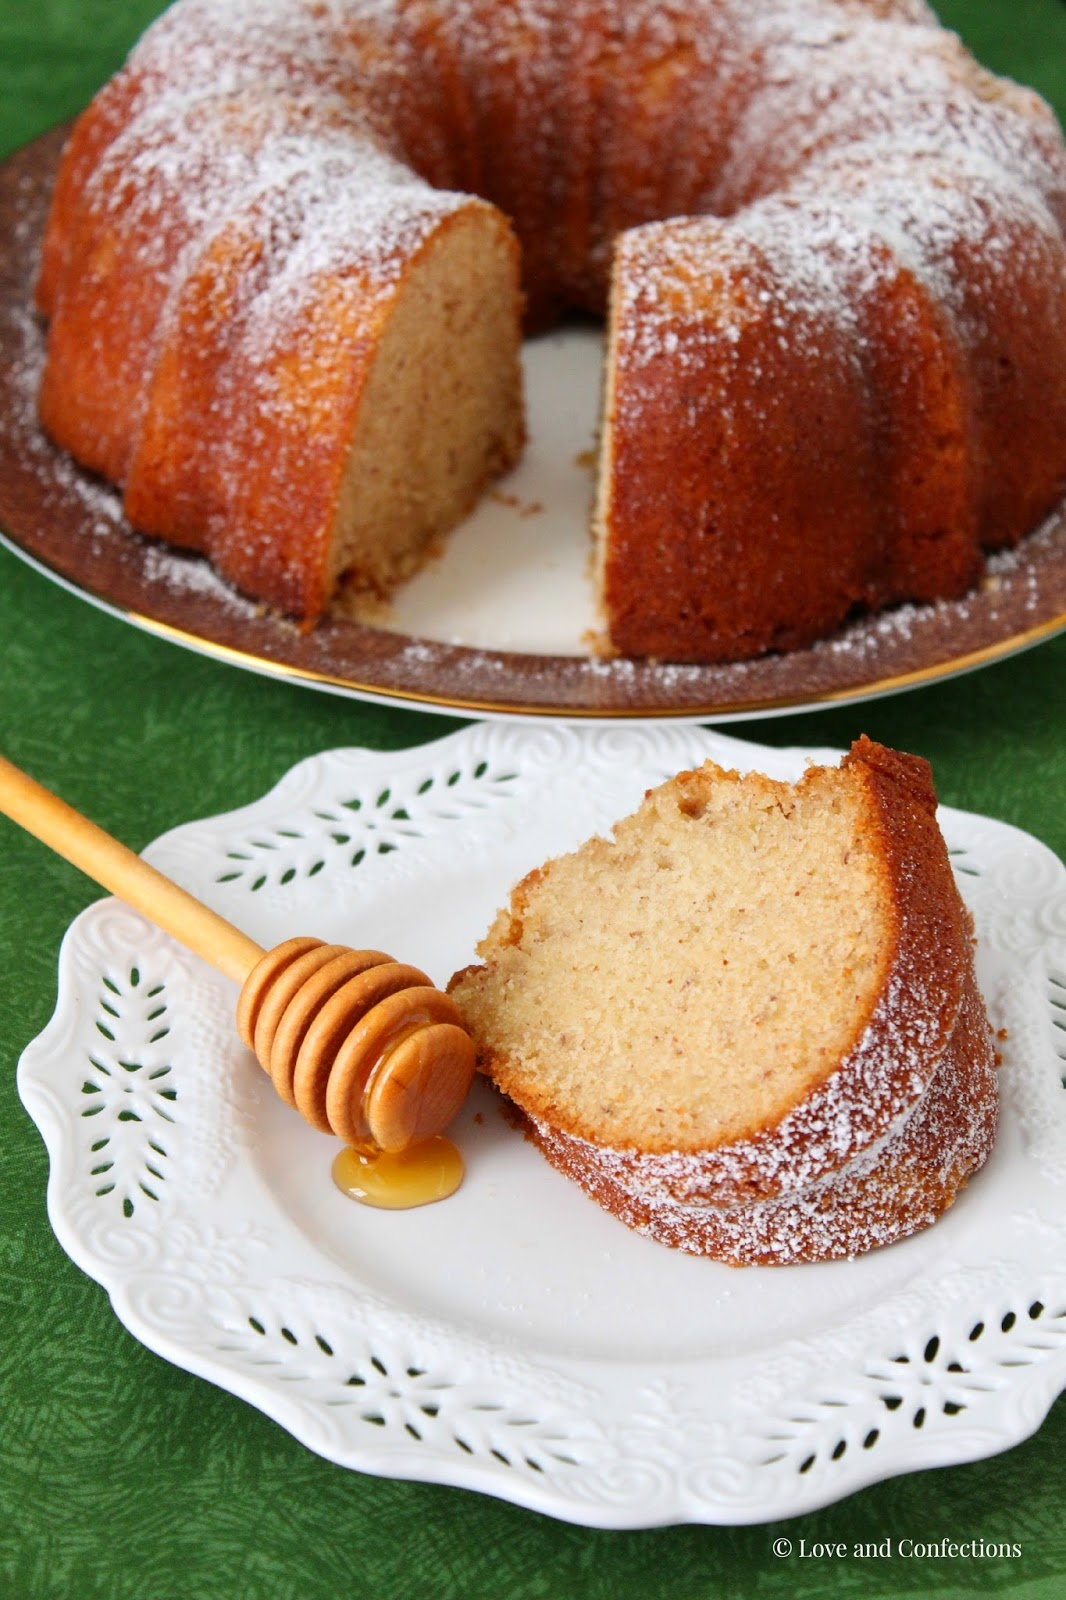 Love and Confections: Honey Almond Bundt Cake